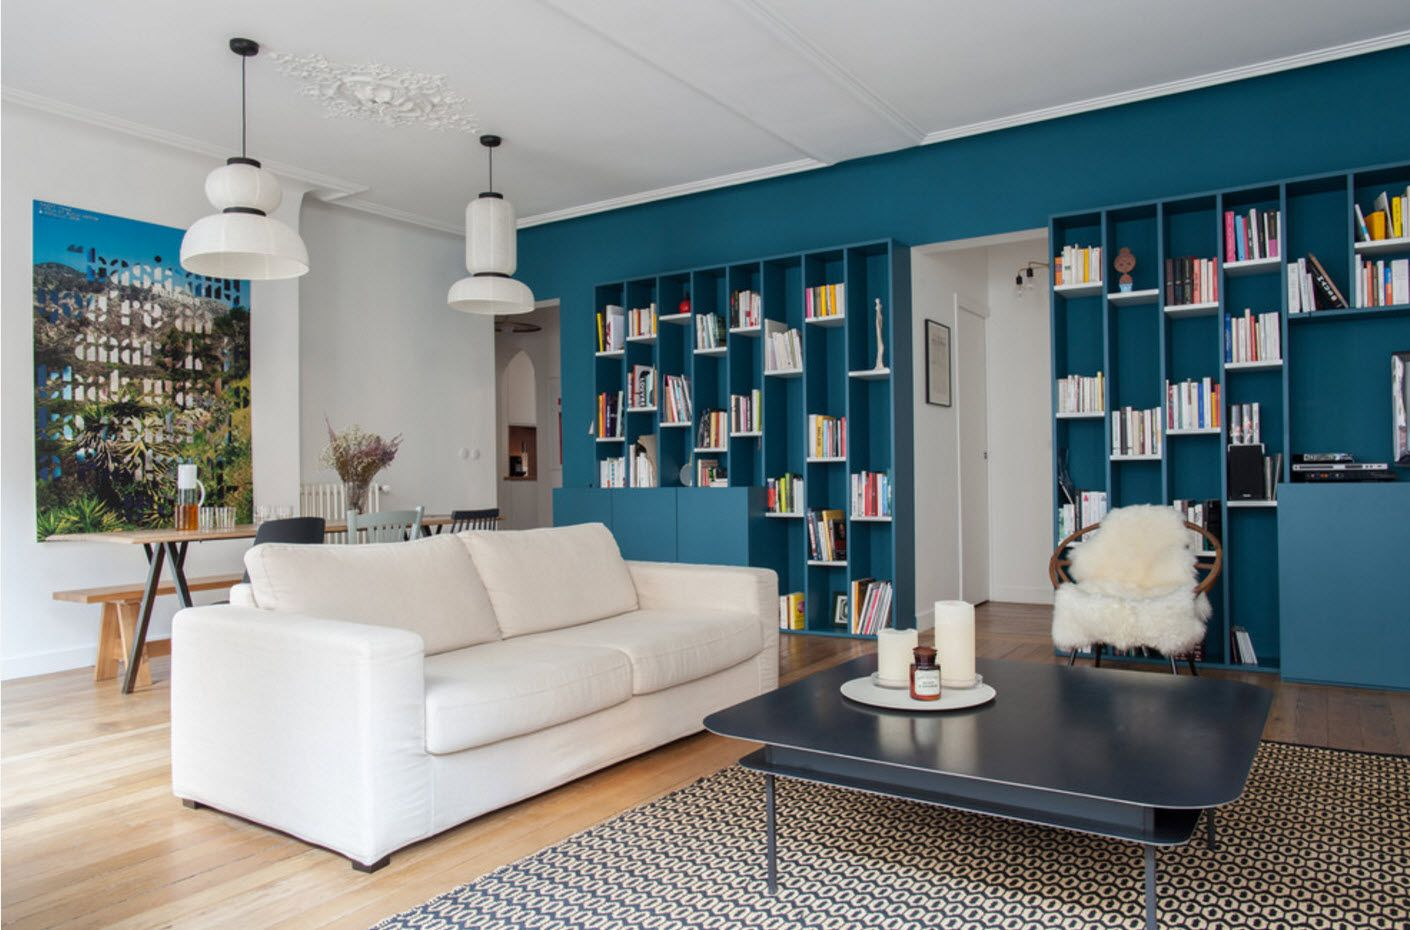 Marine style touch of the living room with deep blue tint of book shelving